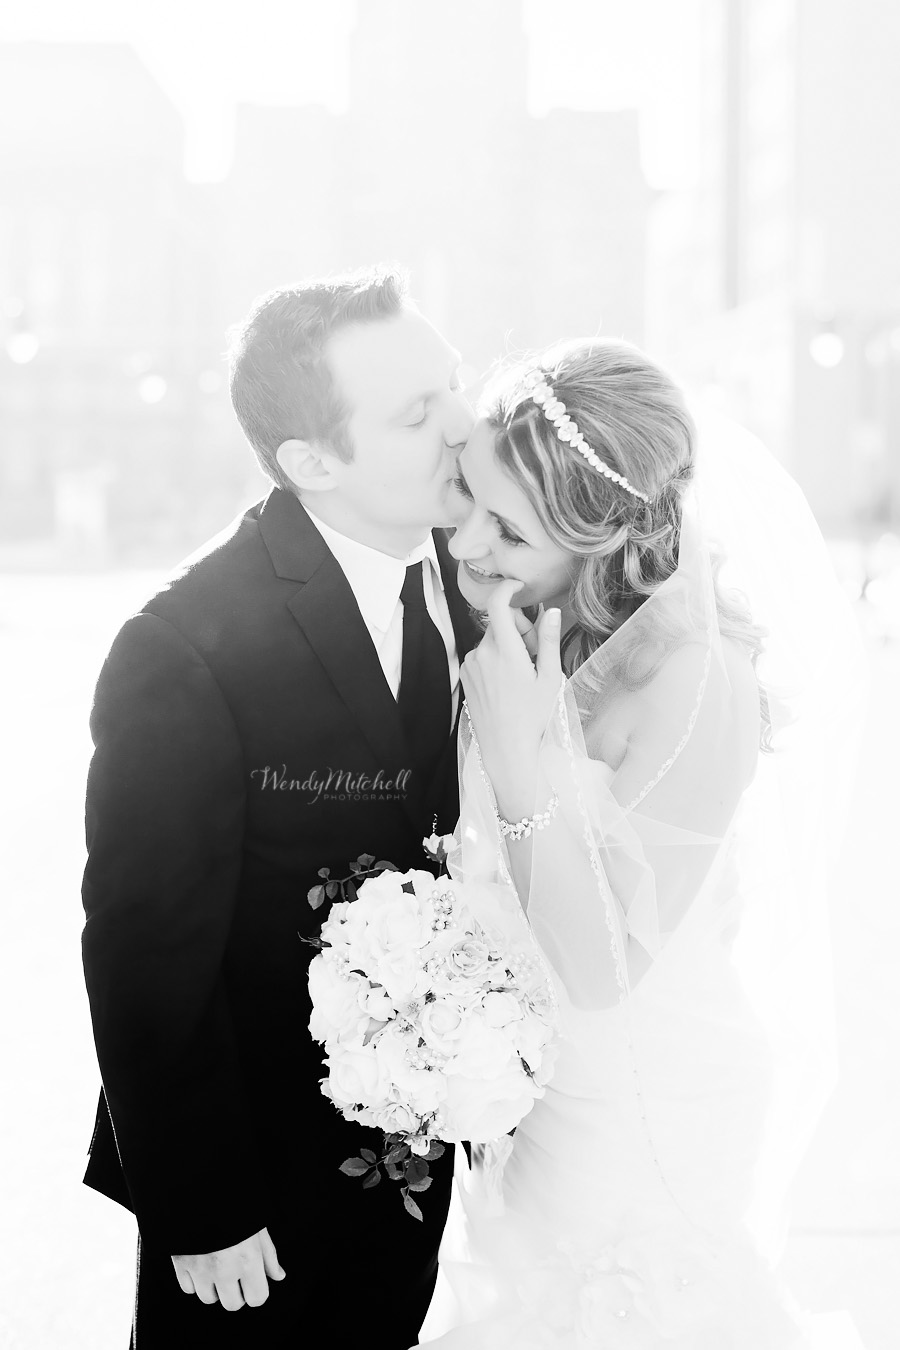 Bride & Groom on city street | Buffalo Wedding Photography | Wendy Mitchell Photography